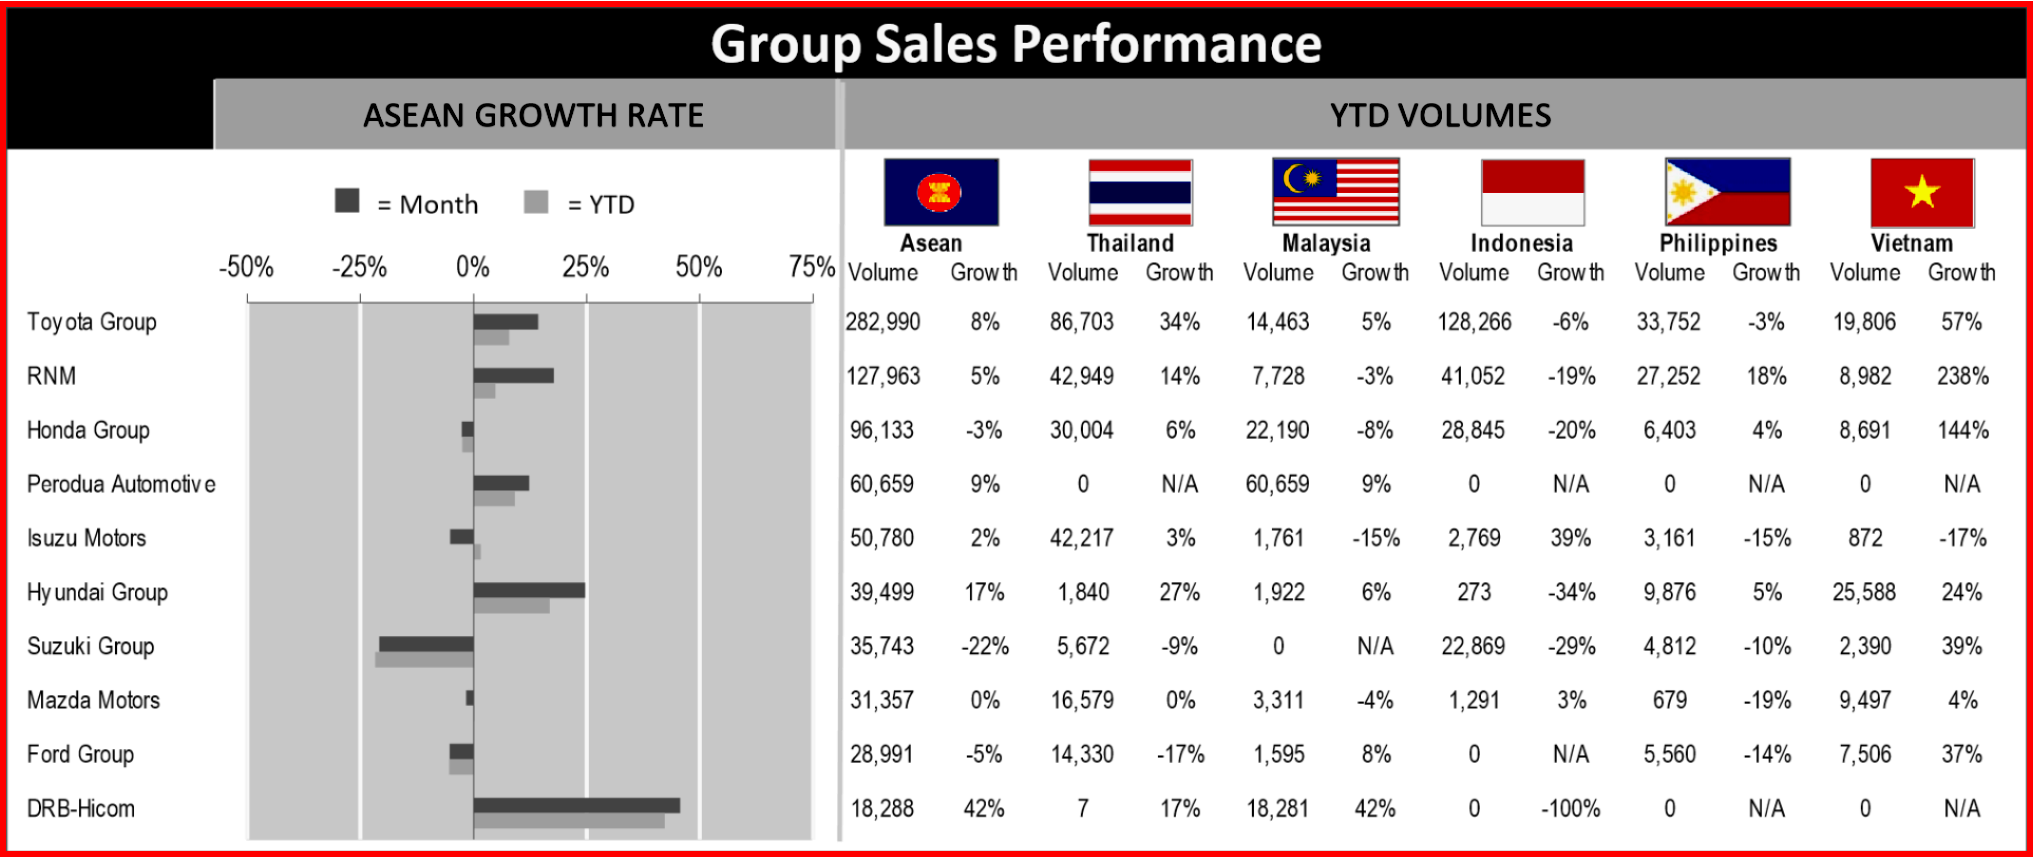 AutoInformed.com on ASEAN Light Vehicle Sales Q1 2019